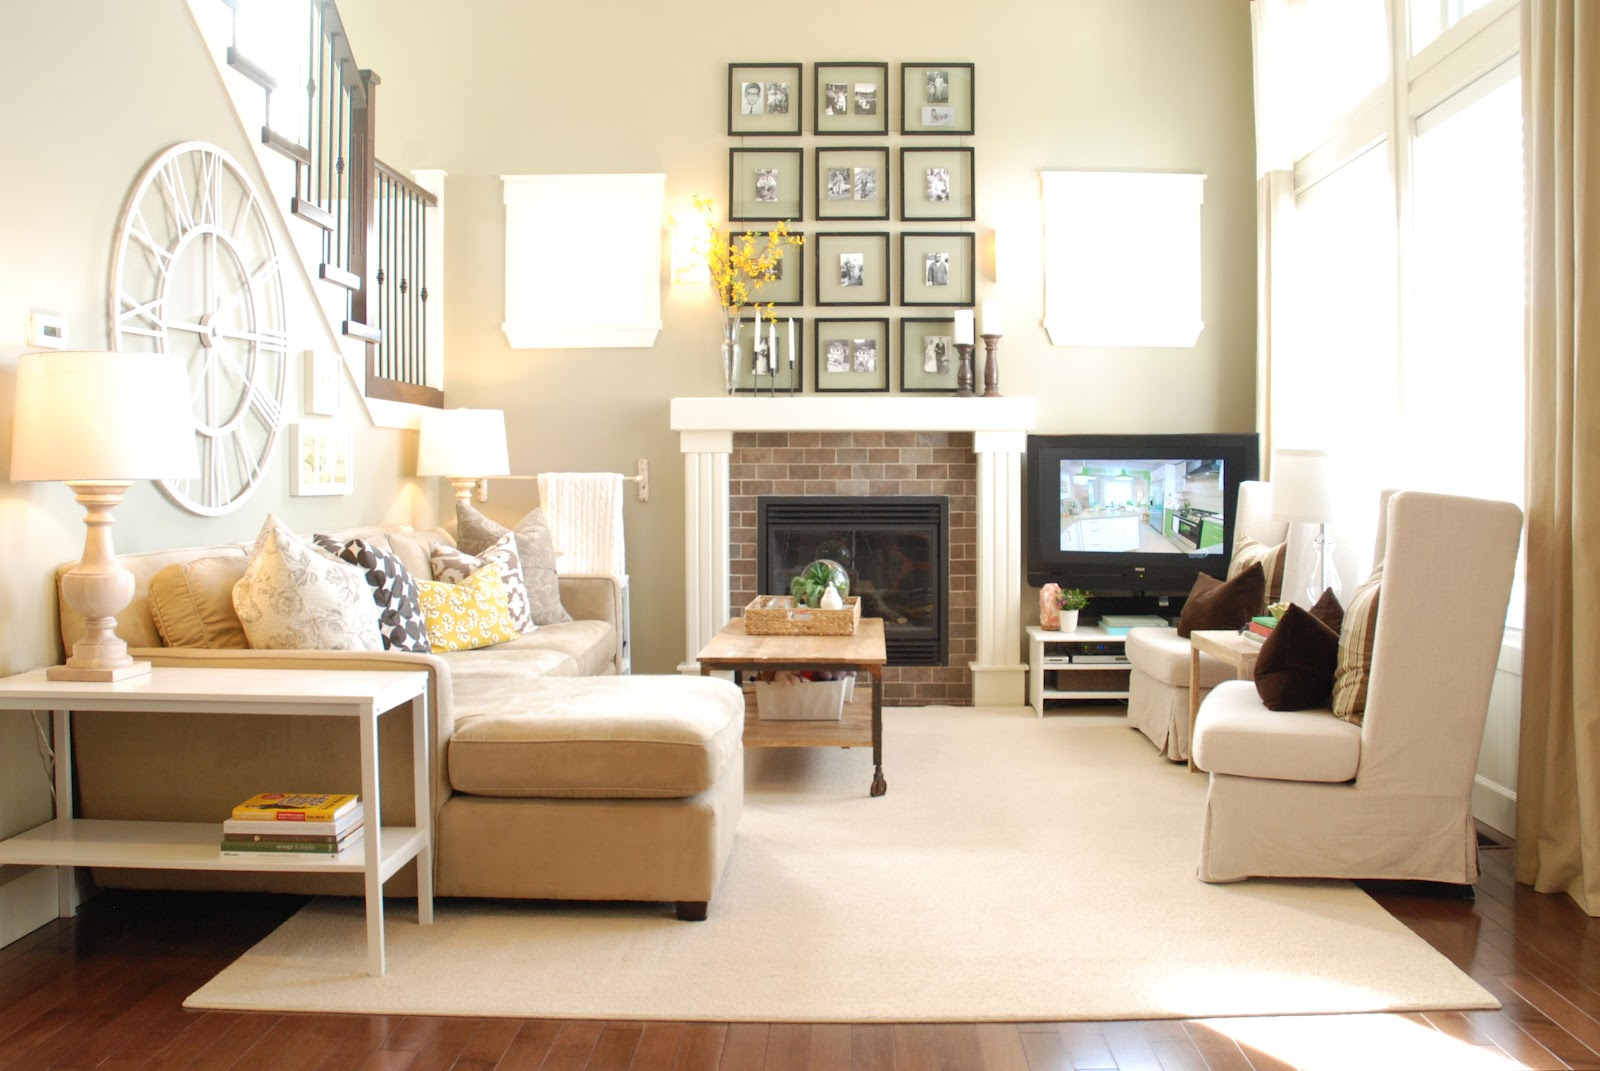 Stunning Neutral Living Room with Fireplace 1600 x 1071 · 214 kB · jpeg